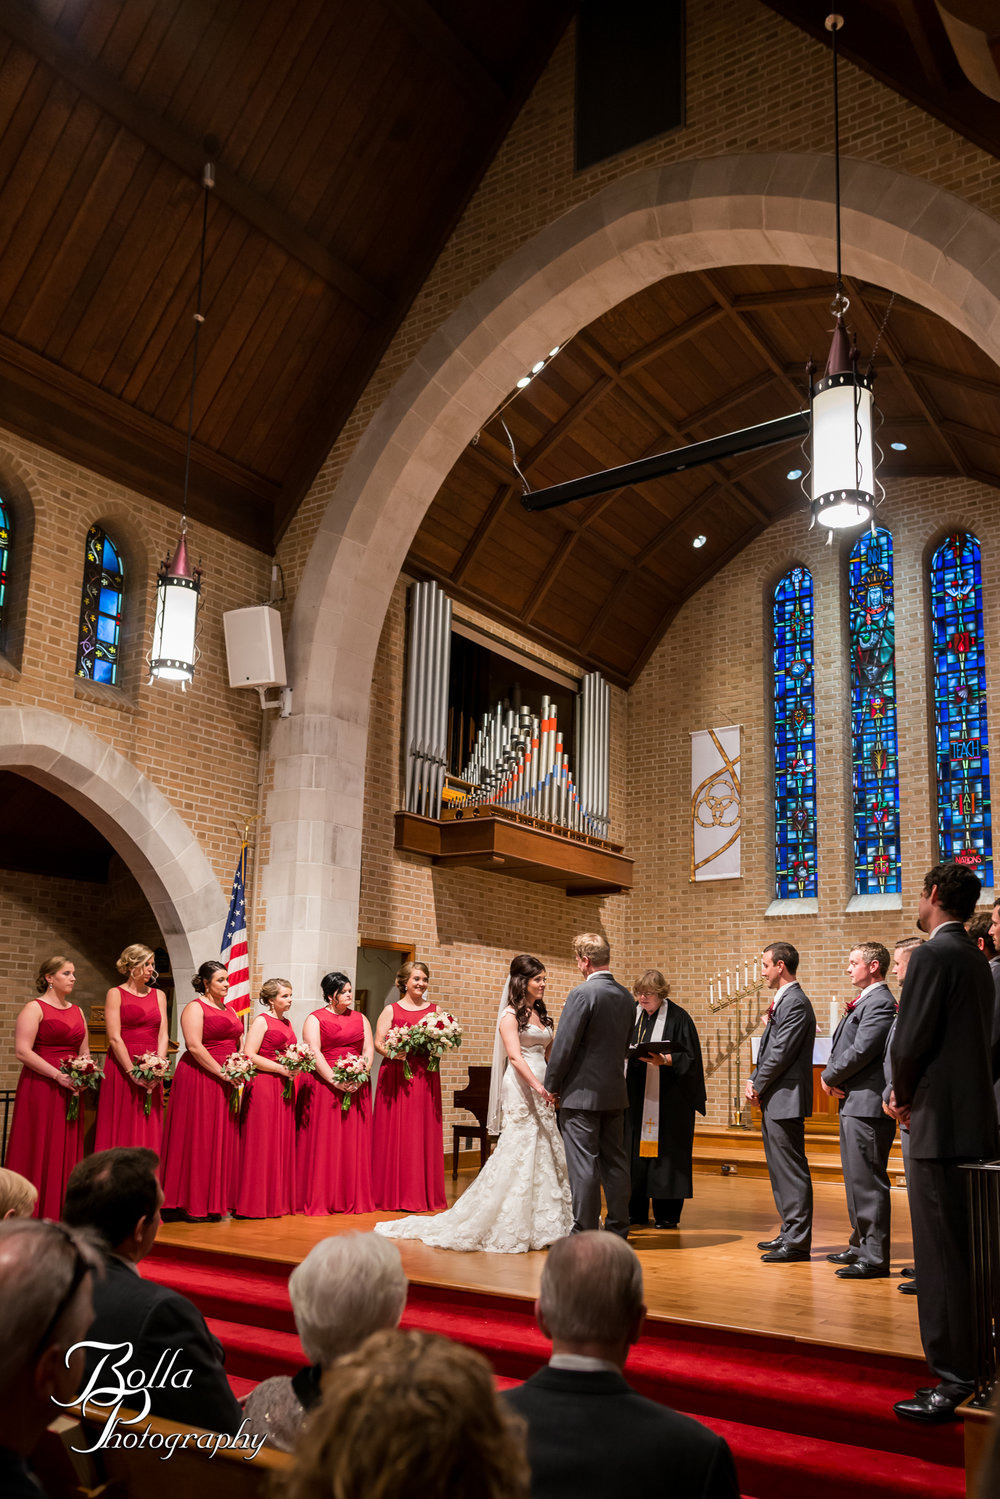 Bolla_photography_edwardsville_wedding_photographer_st_louis_weddings_Reilmann-0160.jpg